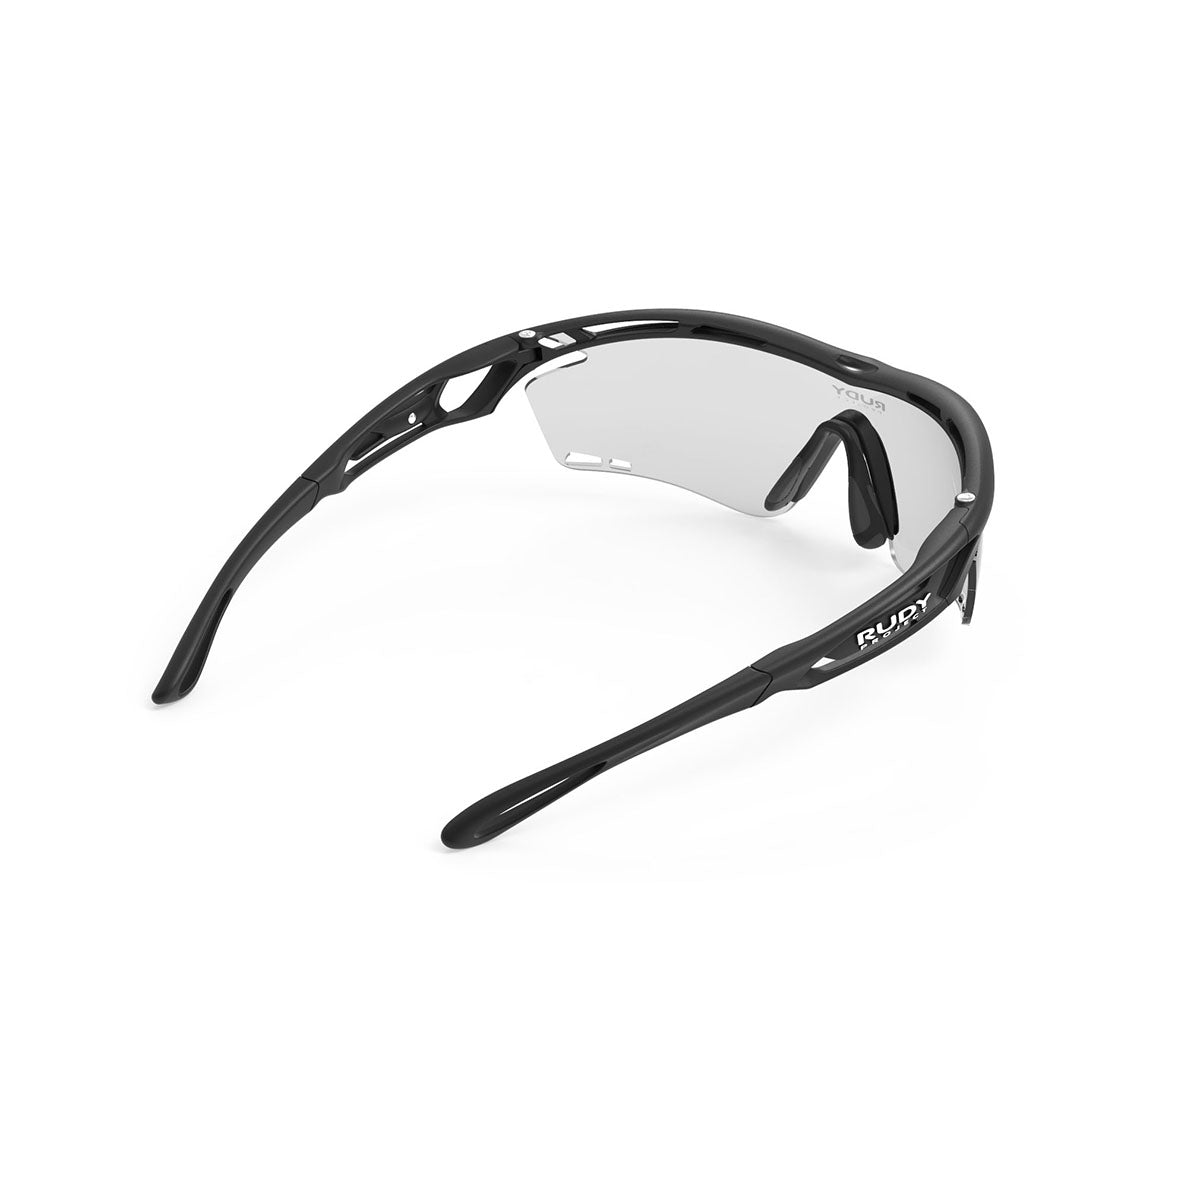 Rudy Project - Tralyx - frame color: Matte Black - lens color: ImpactX-2 Photochromic Clear to Black - photo angle: Top Back Angle Variant Hover Image